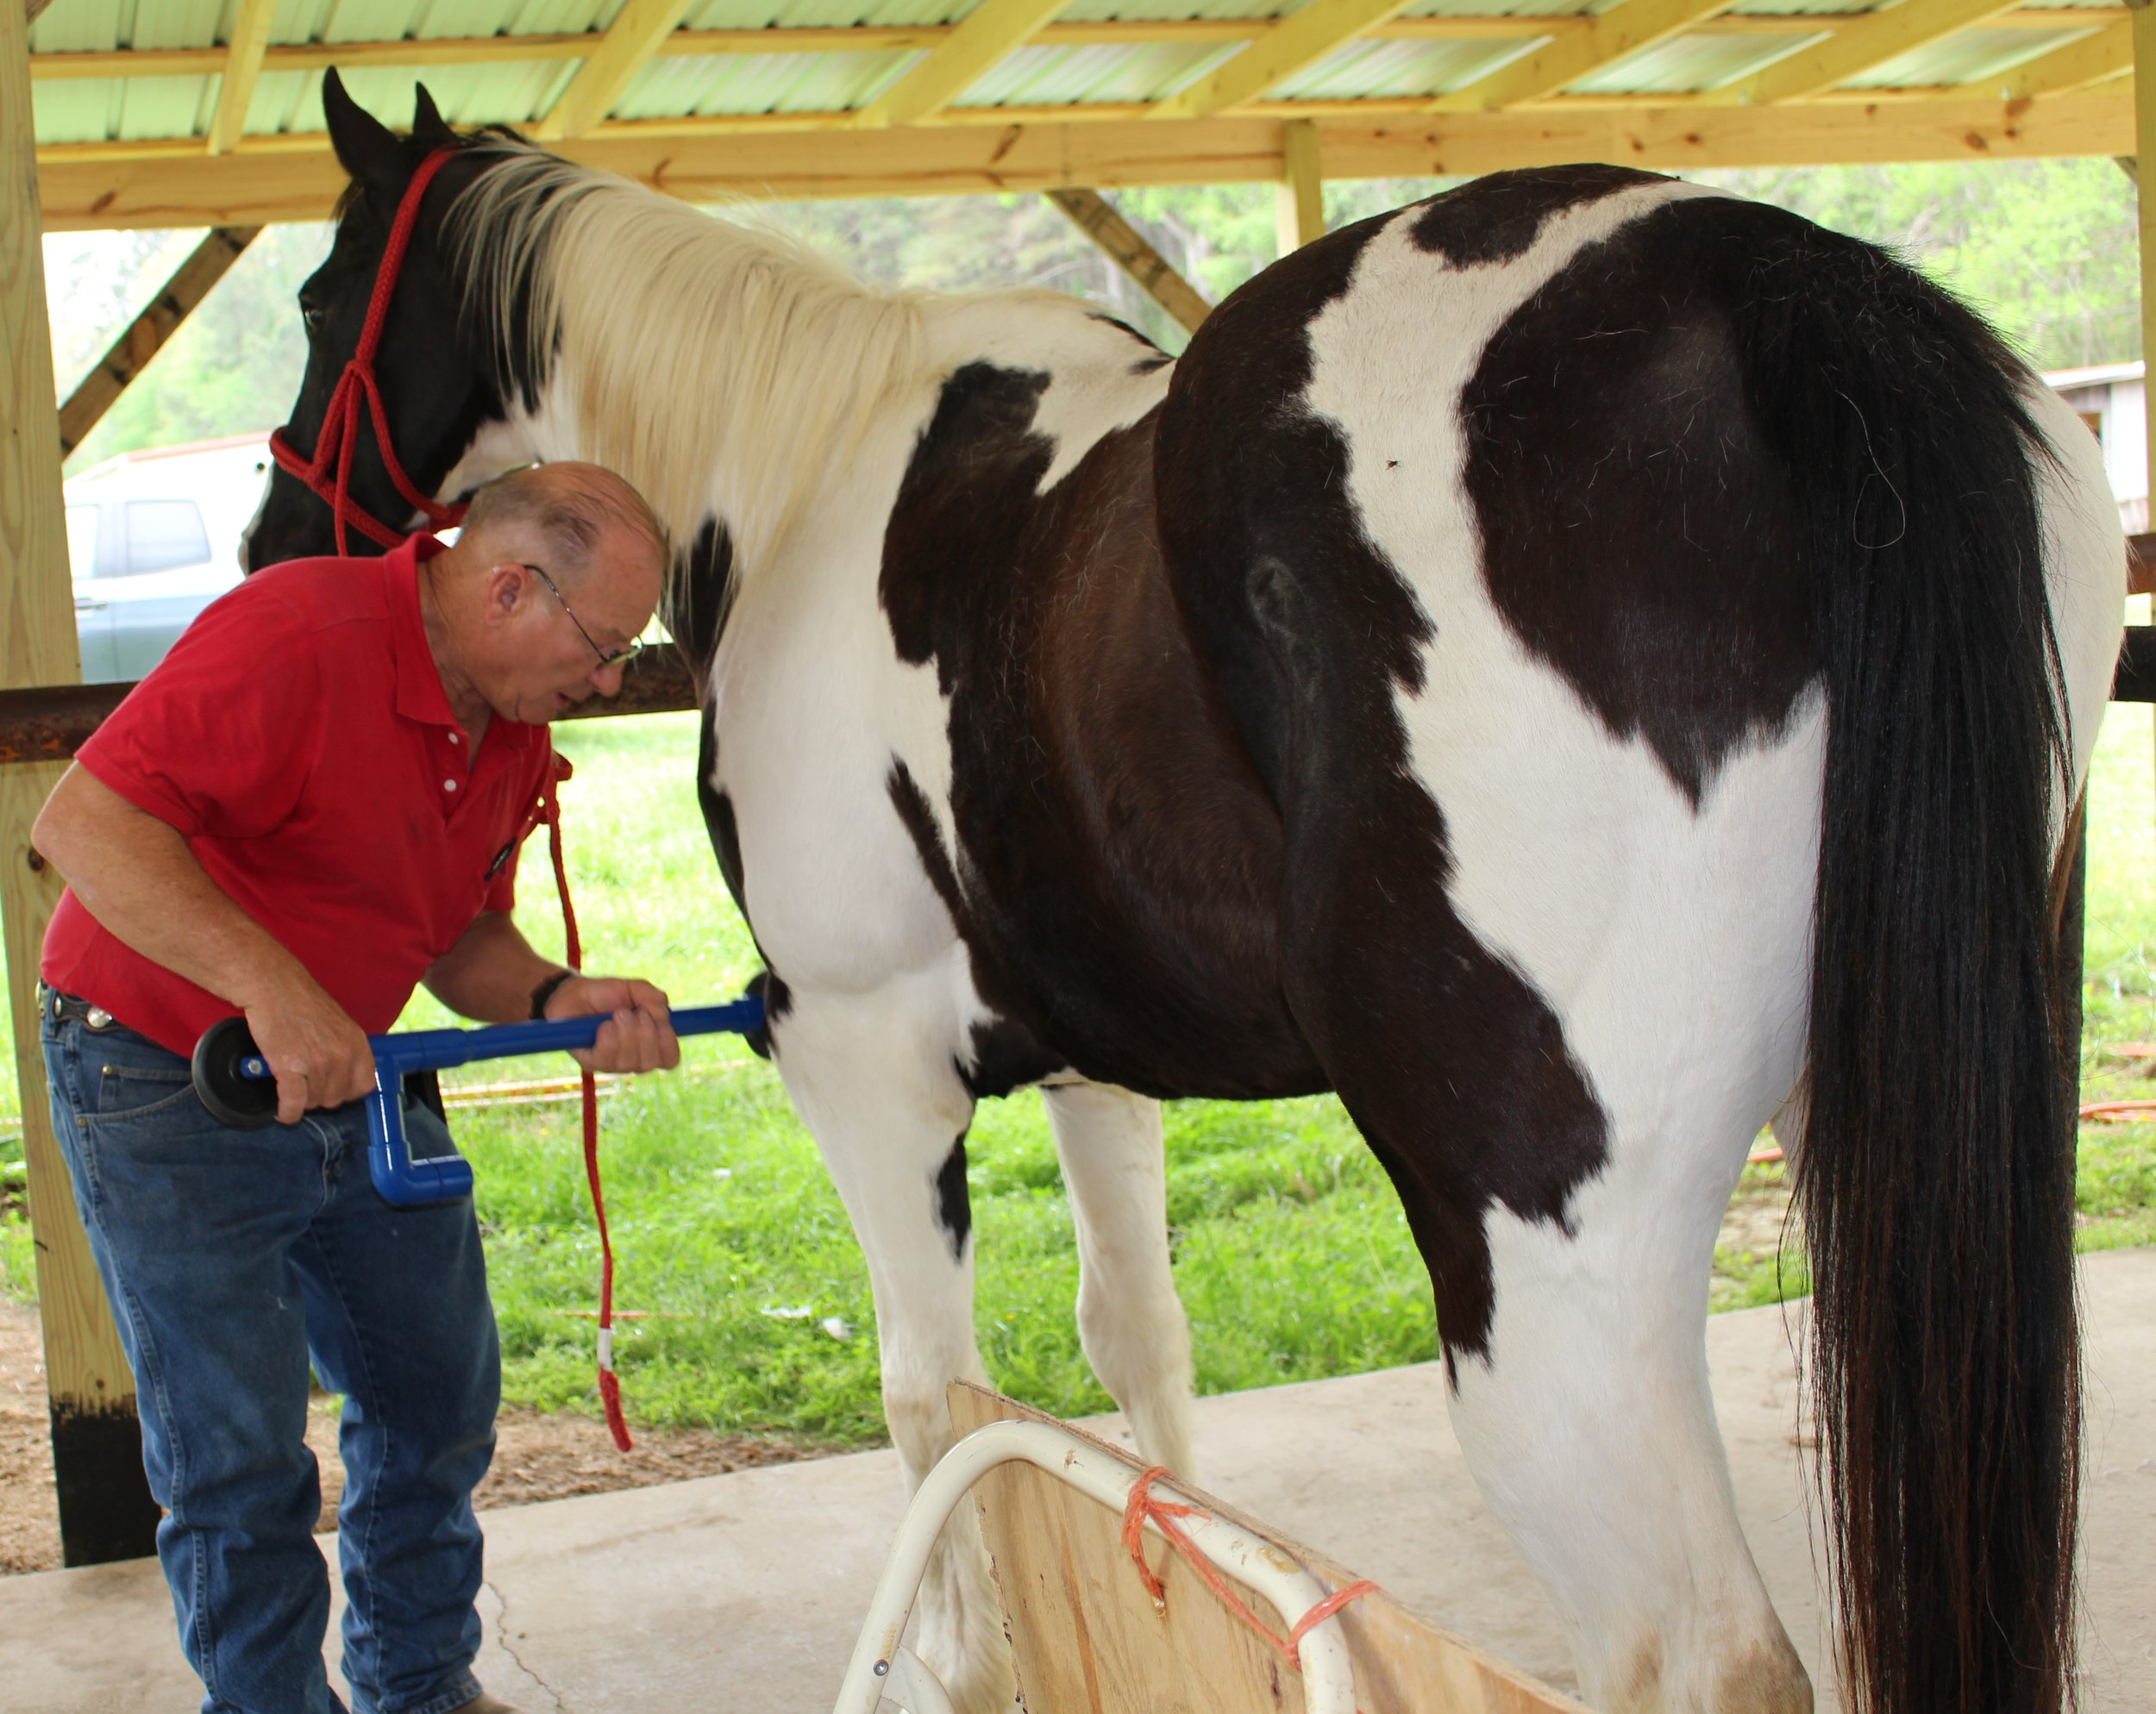 Dan Marcum, EFT Instructor, demonstrating his patented D-Stressor Tools on Horses.